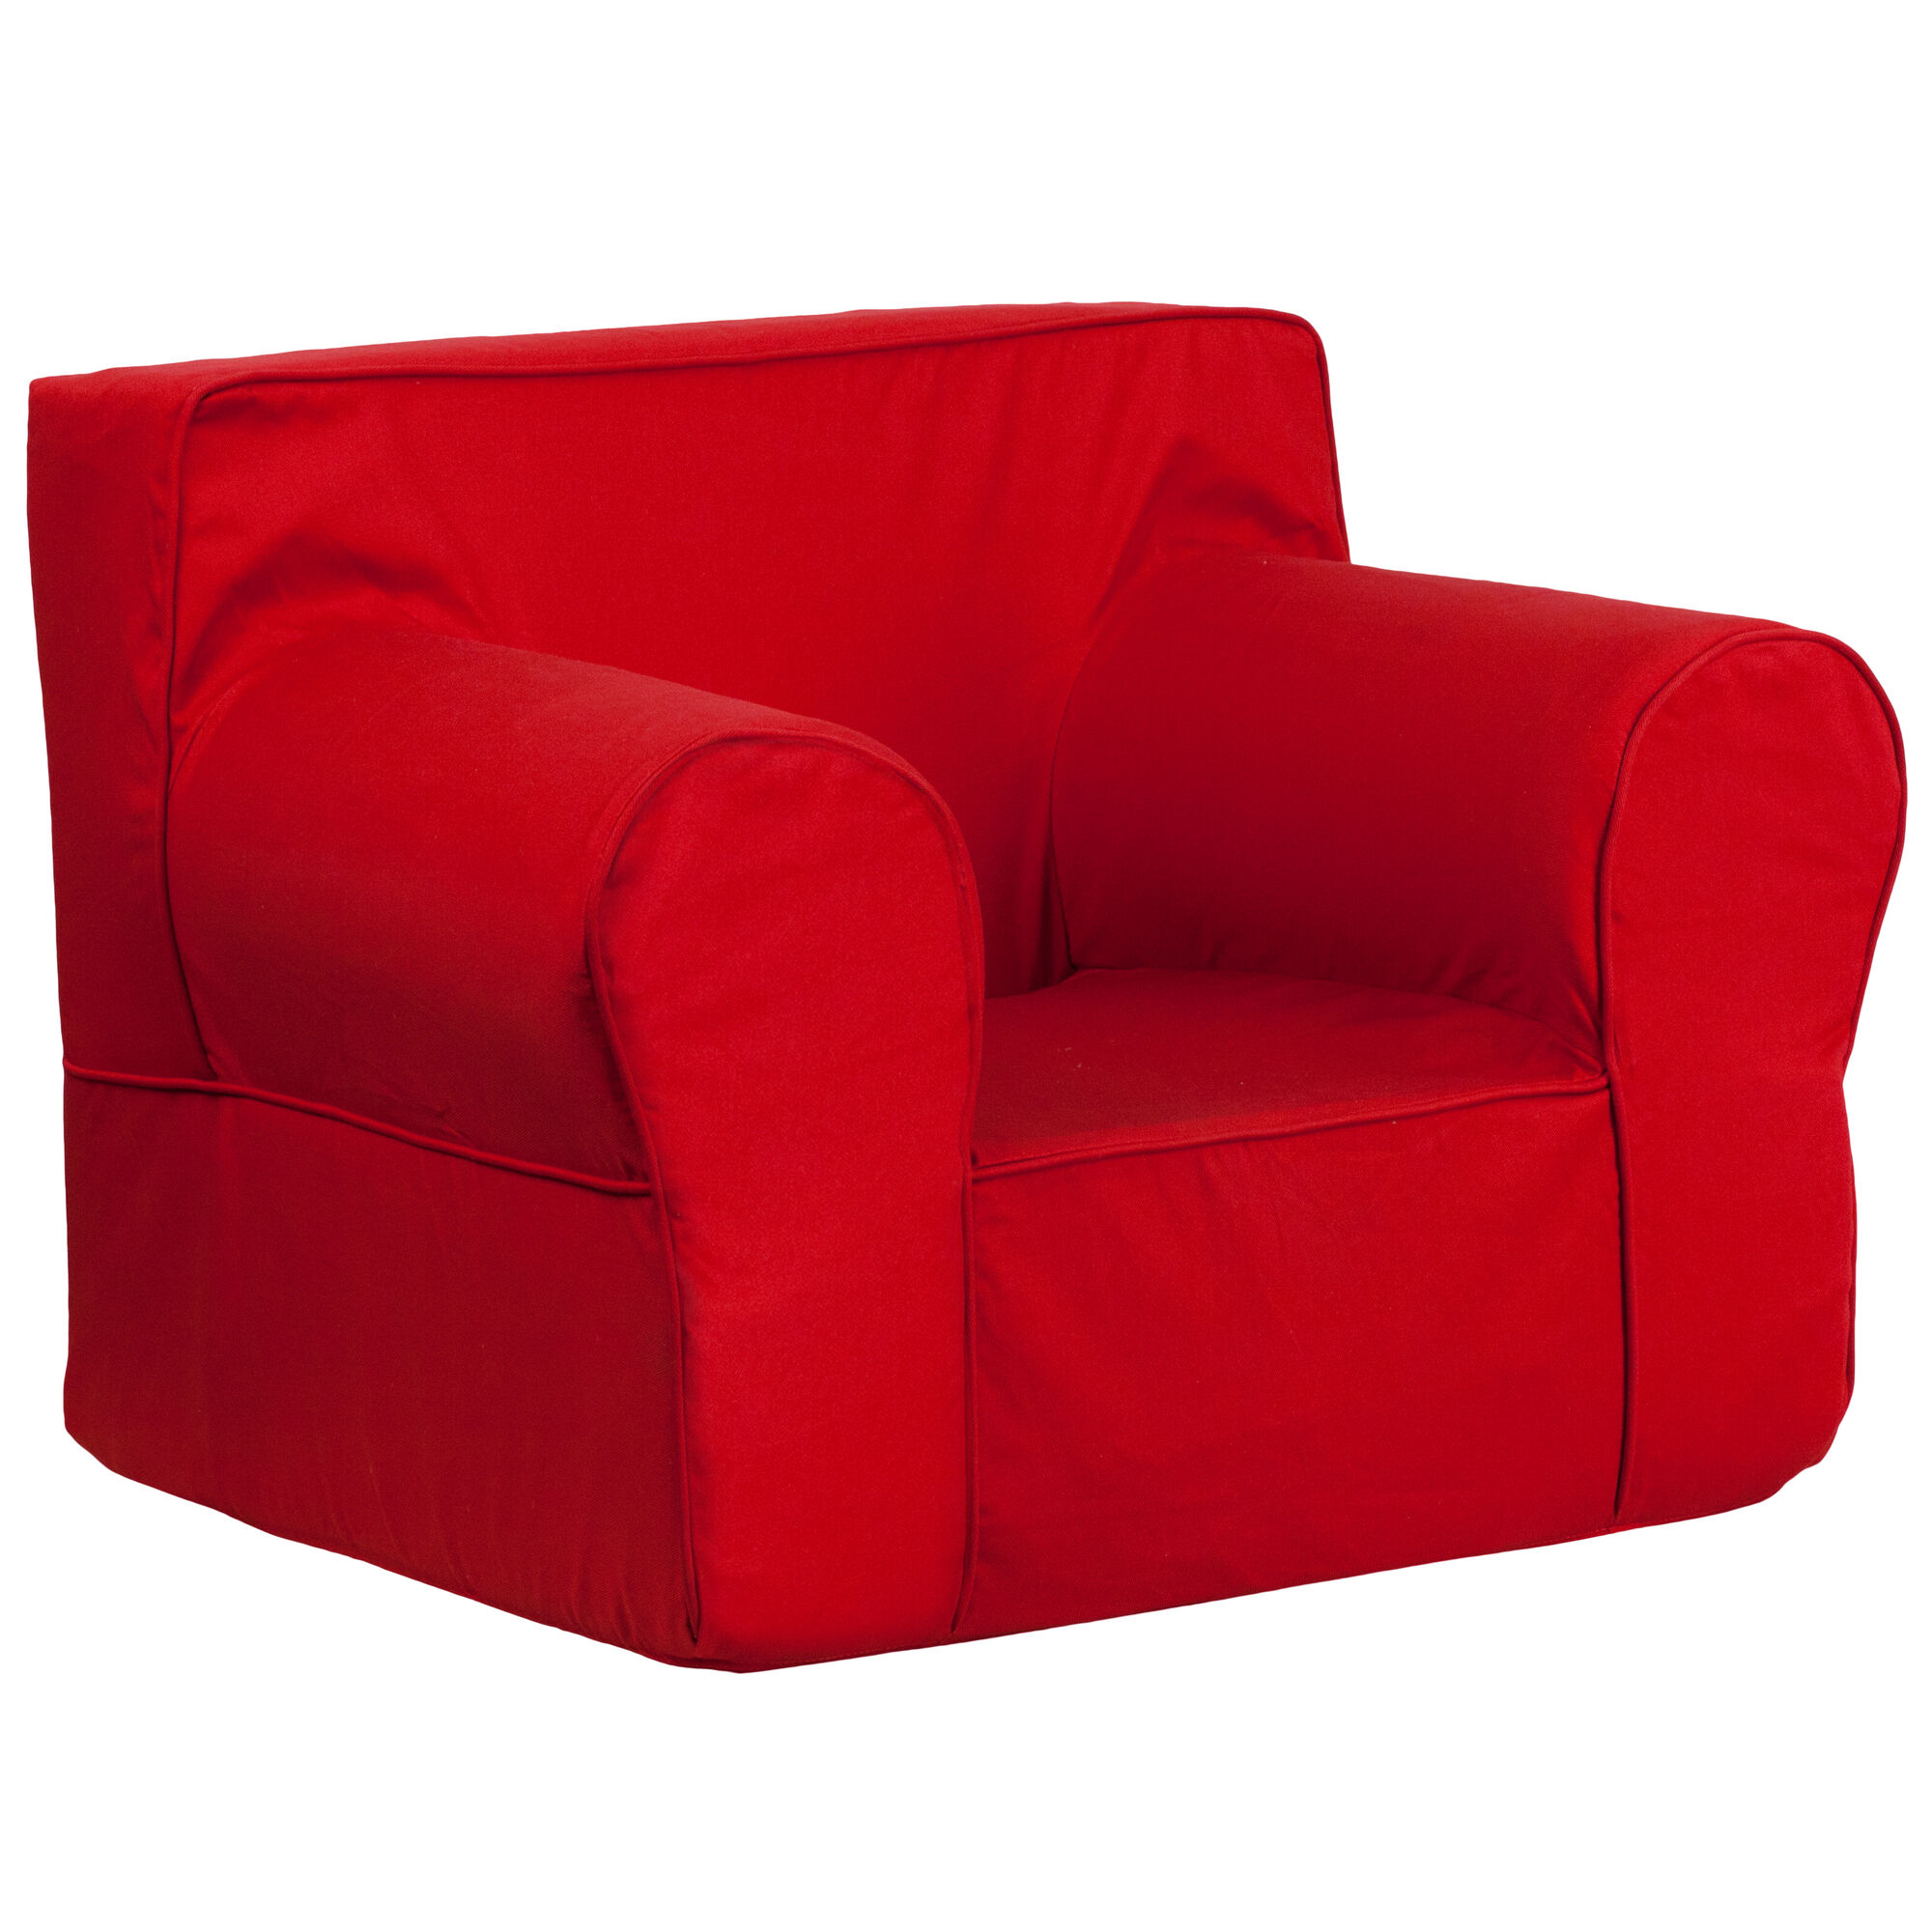 Our Oversized Solid Red Kids Chair Is On Sale Now